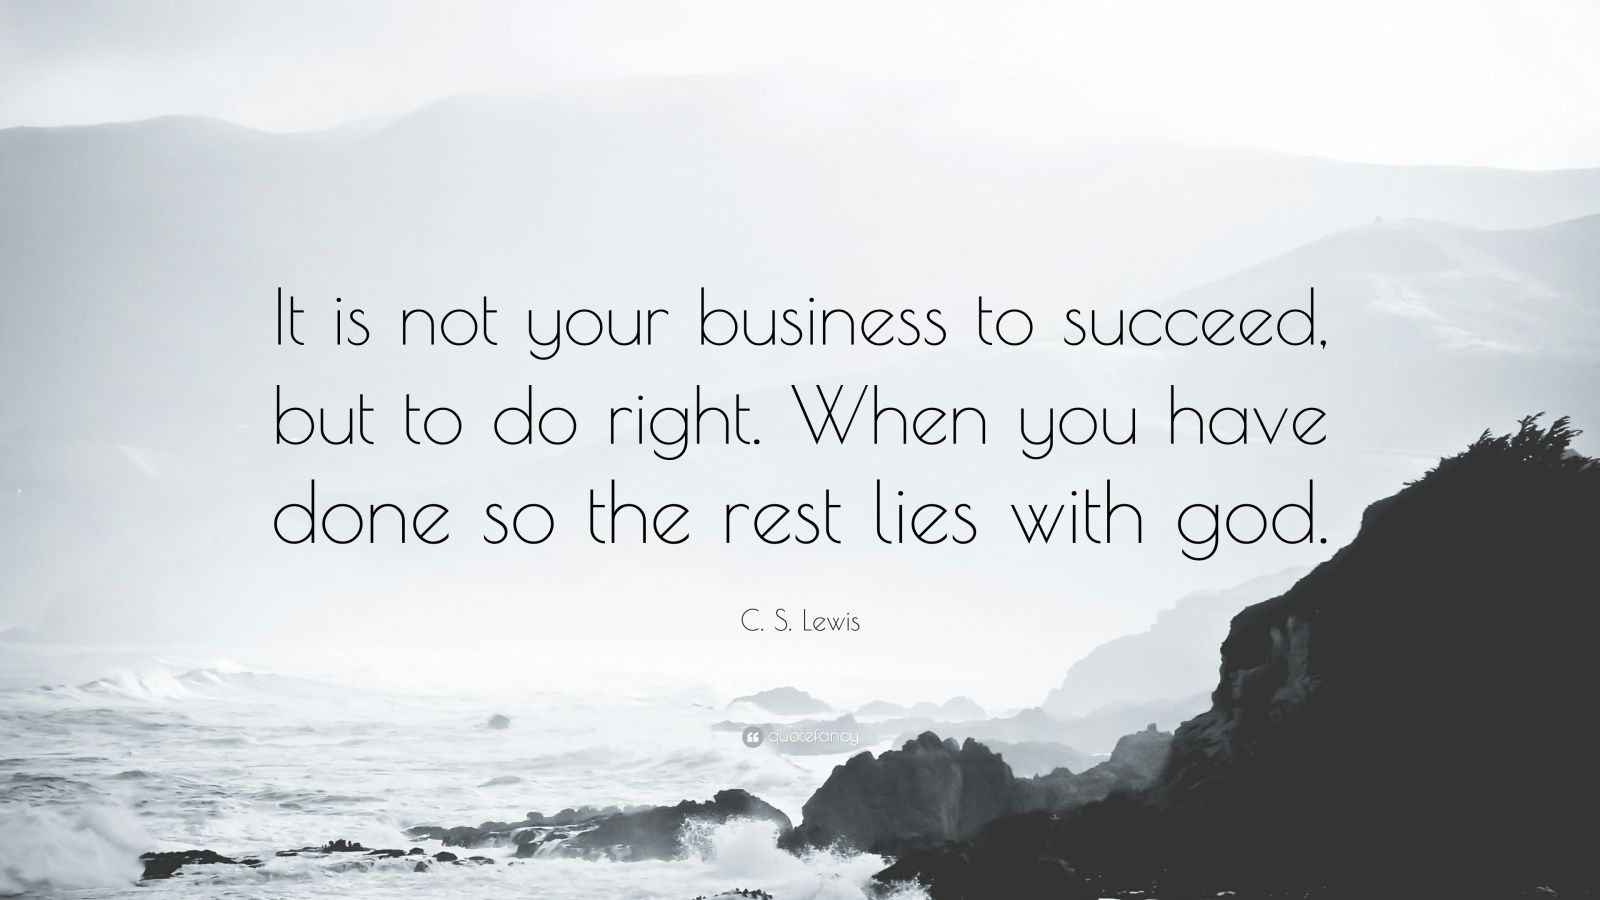 """C. S. Lewis Quote: """"It is not your business to succeed, but to do right. When you have done so the rest lies with god."""""""